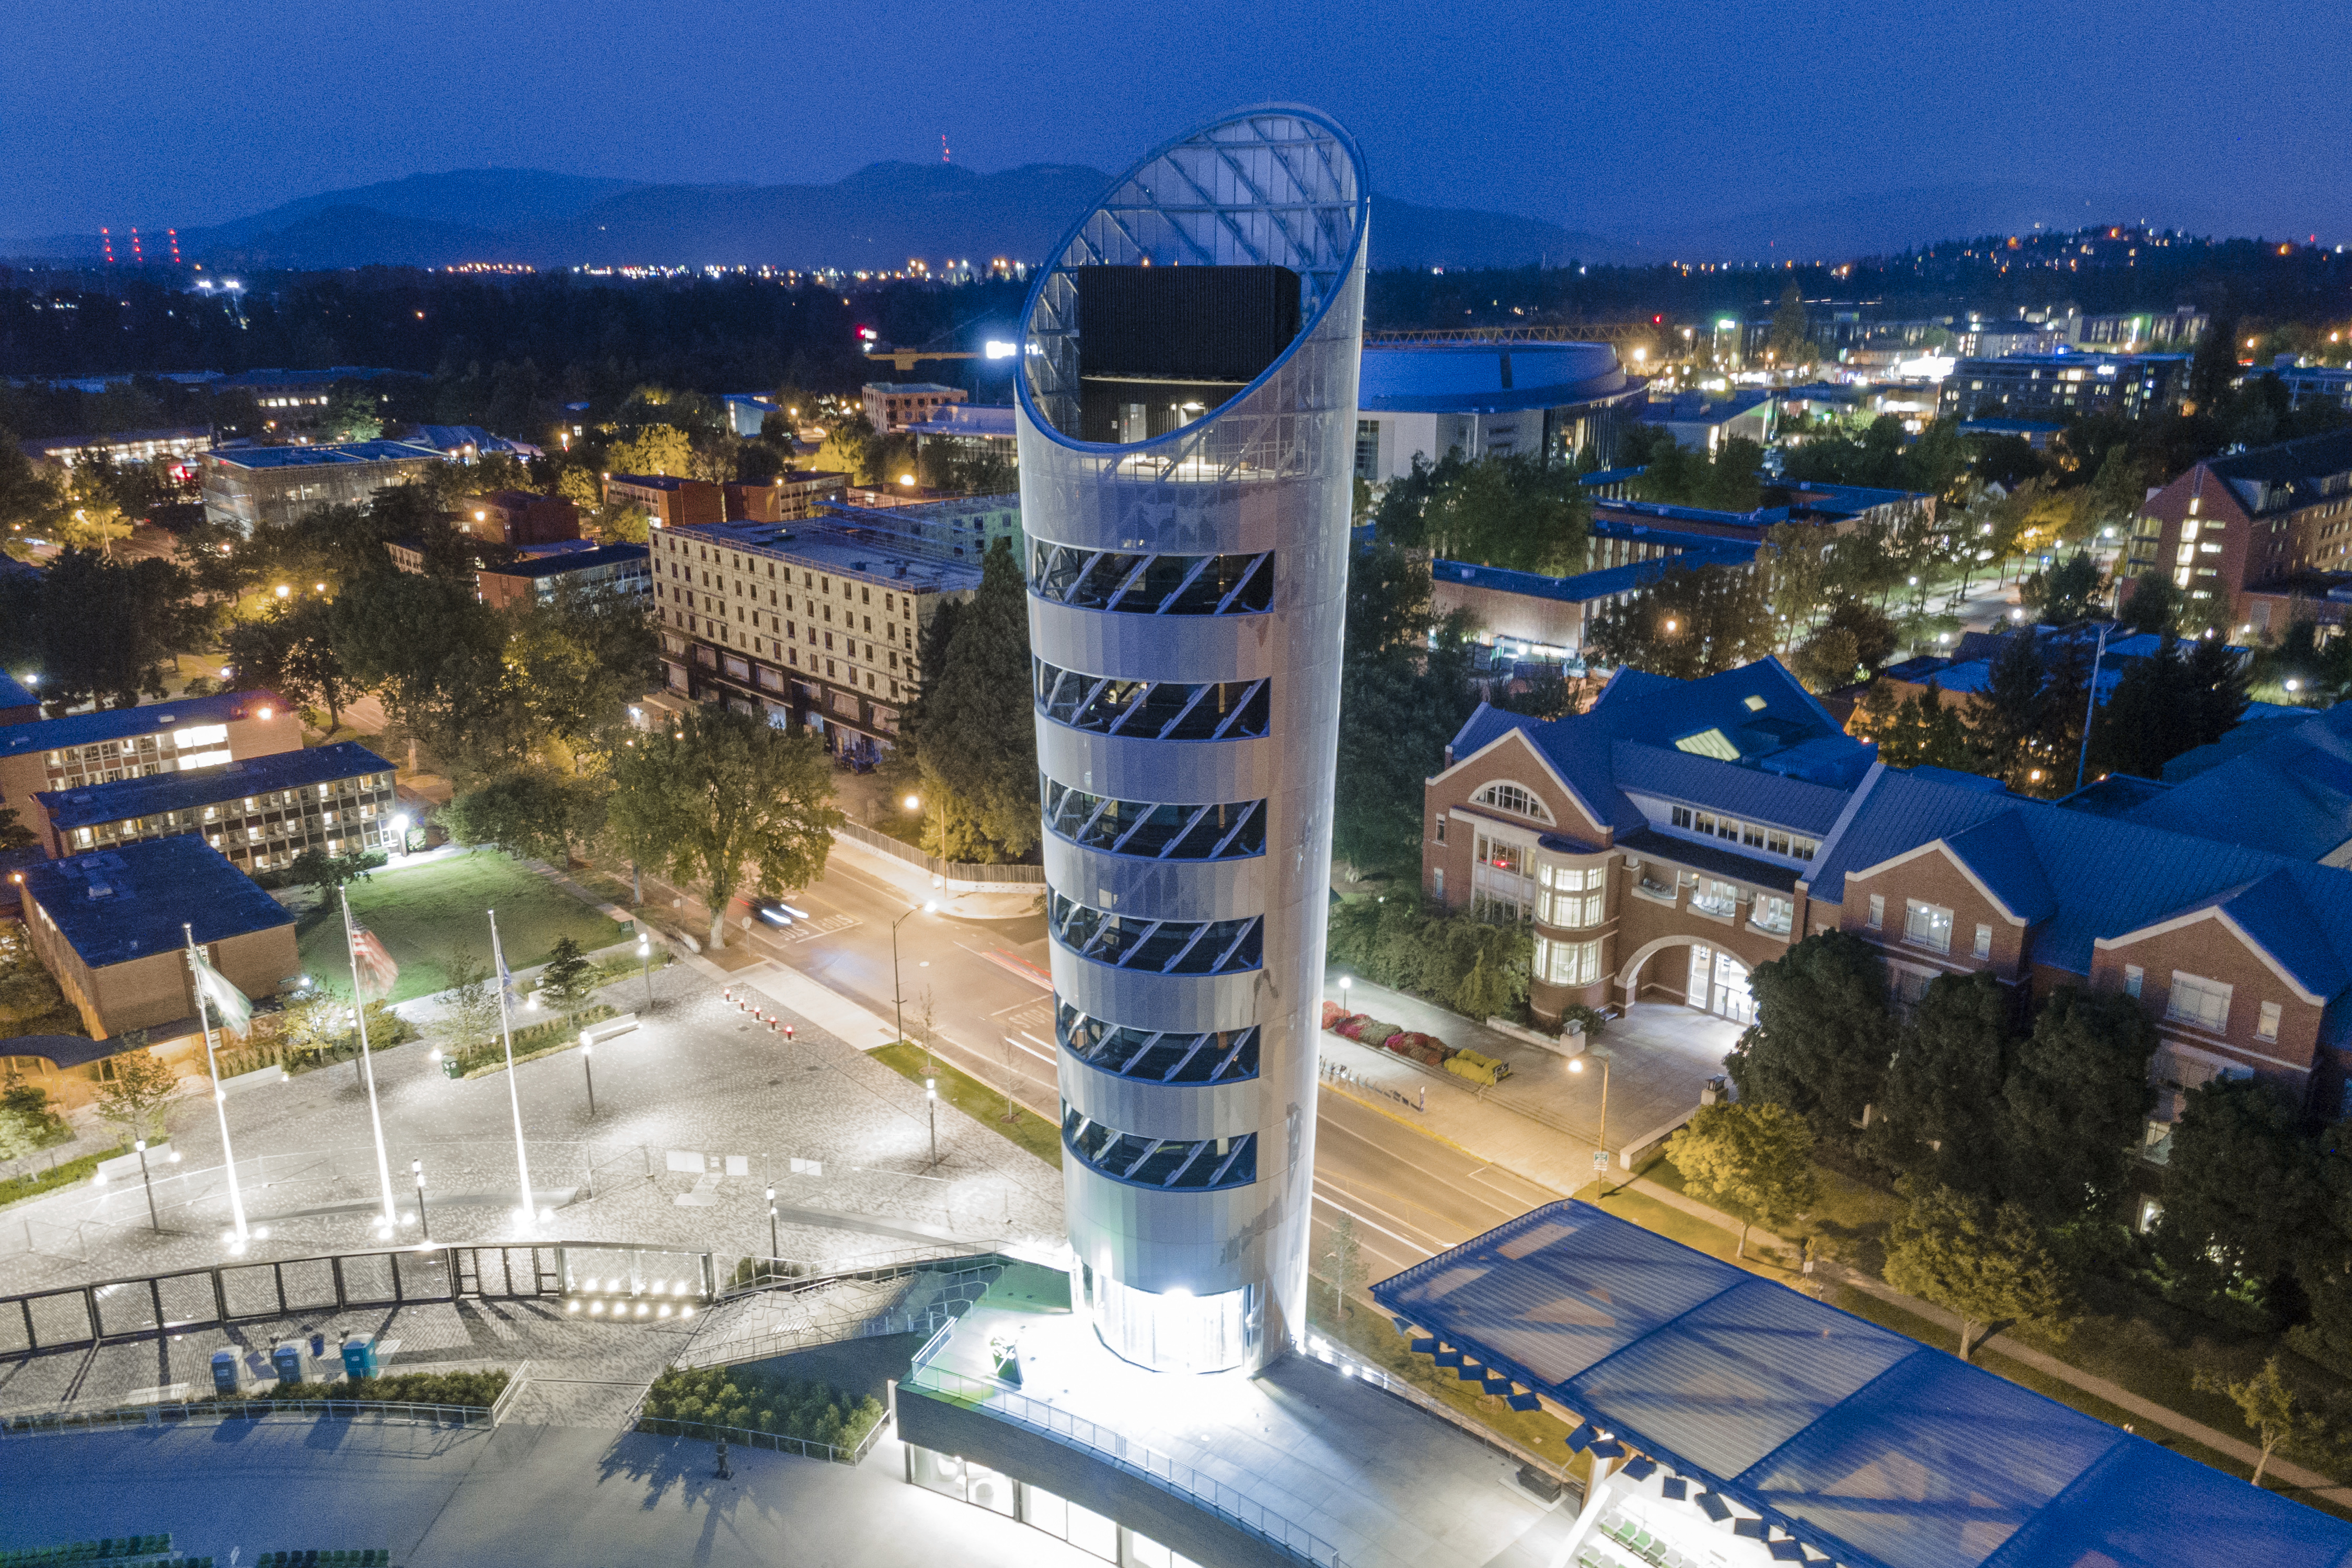 Night view of the 10-story Hayward Field Tower.